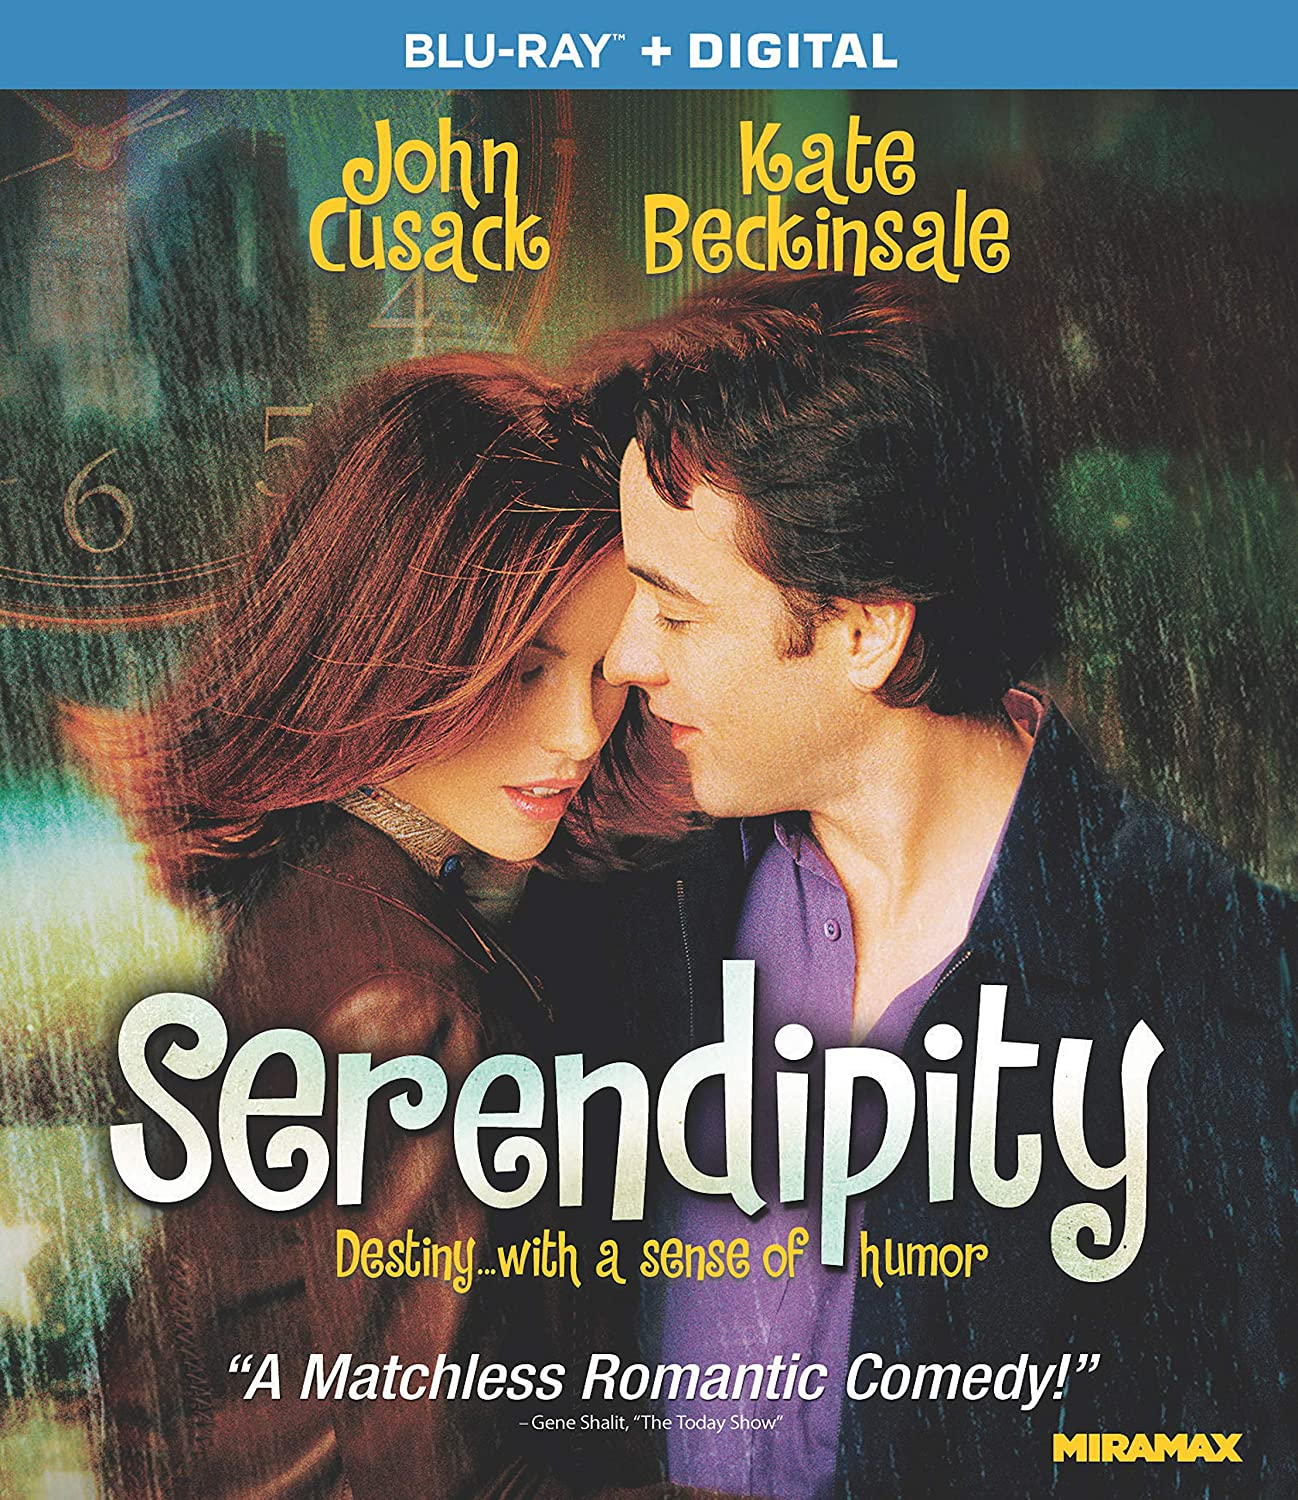 Serendipity Blu-ray Digital Clearance OFFicial store SALE Limited time +